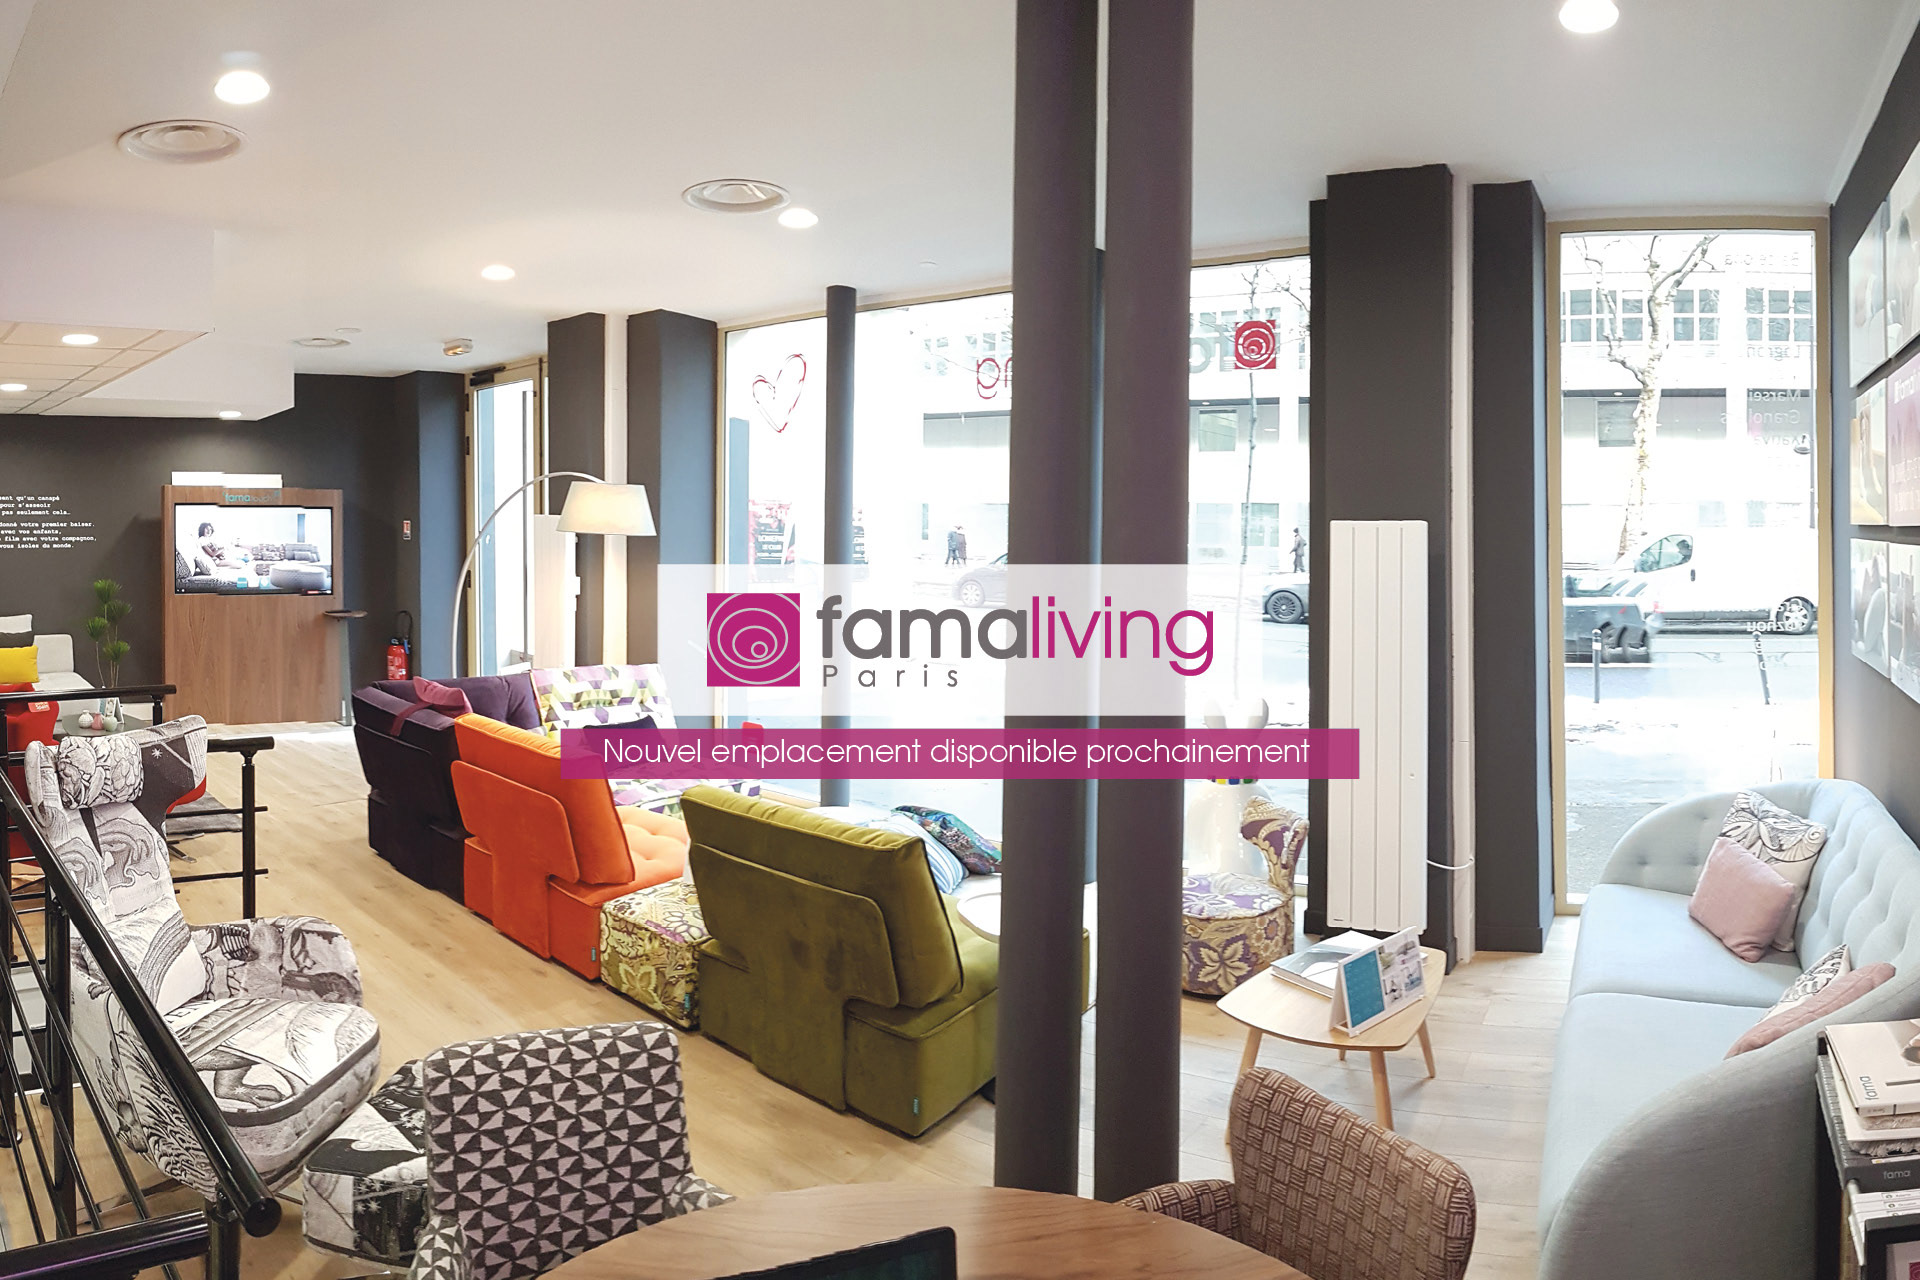 https://www.famaliving.com/paris-en